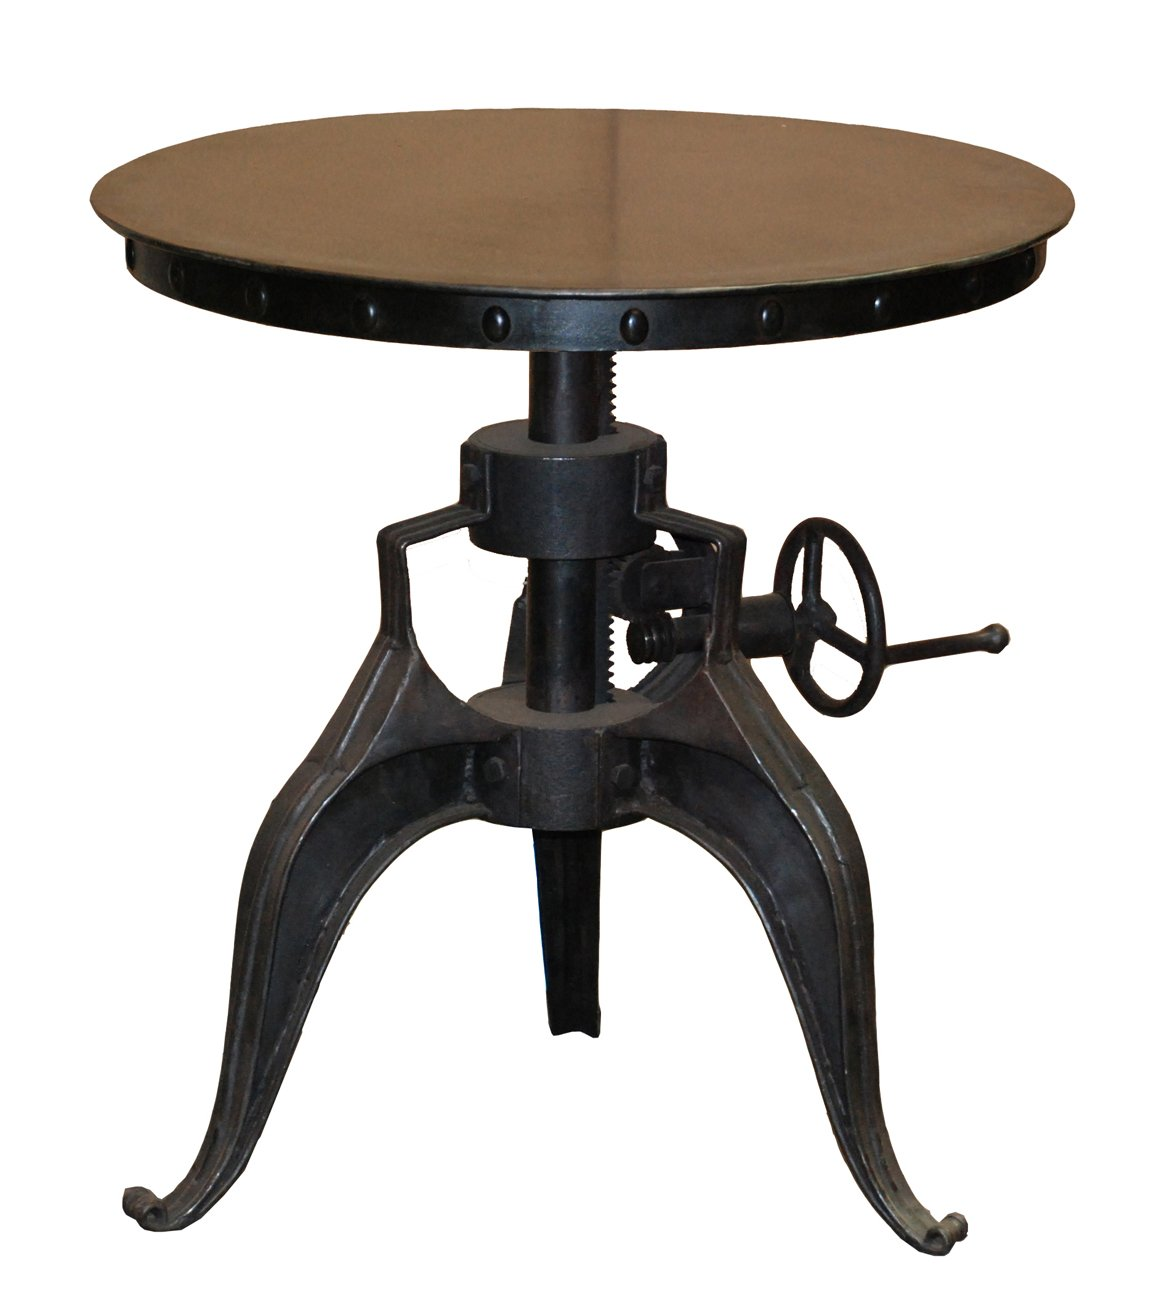 Rustic Industrial Style Round Iron Metal Accent Table With